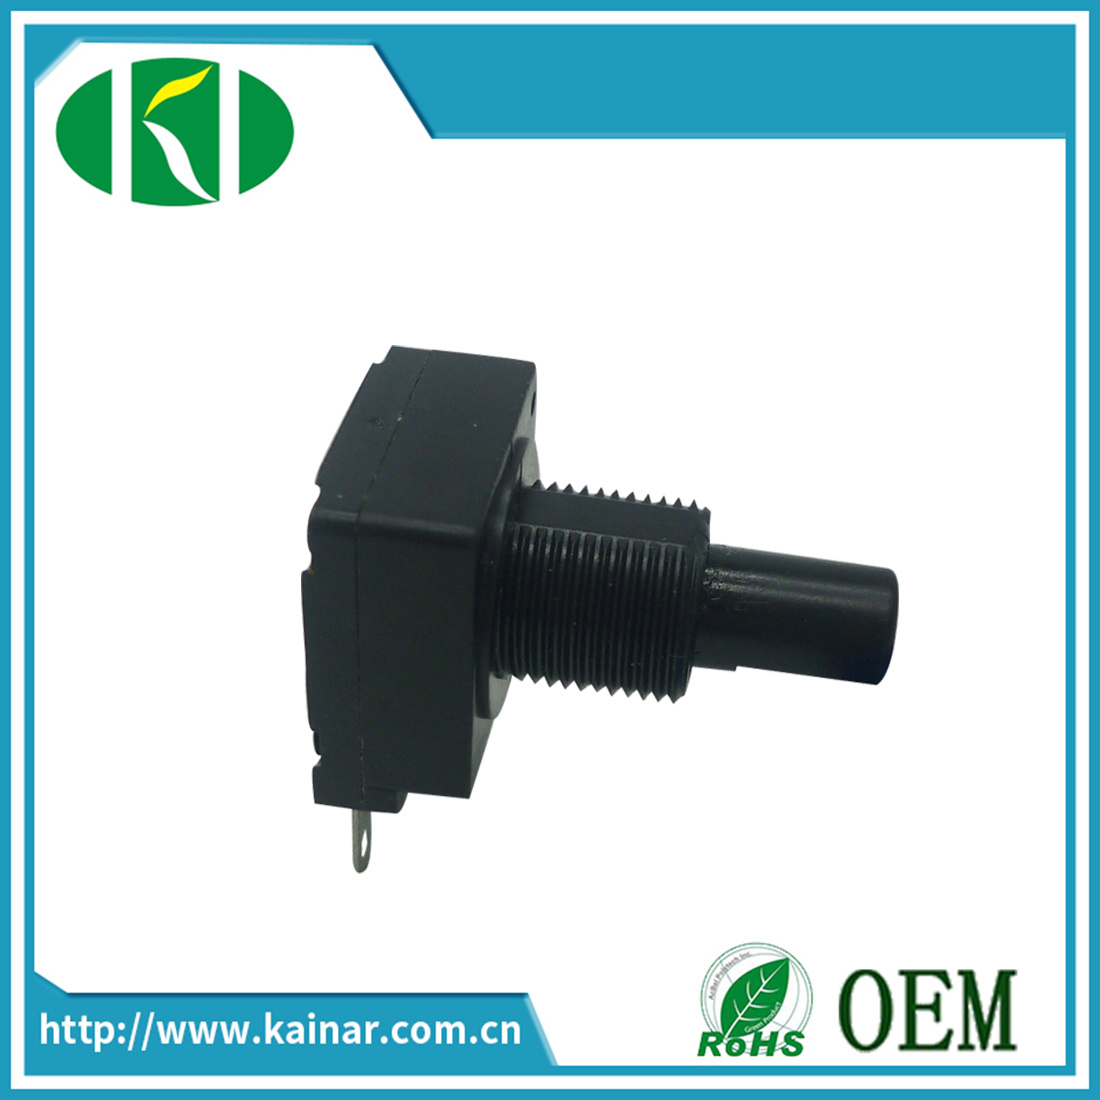 Remarkable China 3 Pins Mono Rotary Potentiometer With Insulated Shaft Wh0162 2 Wiring Cloud Strefoxcilixyz